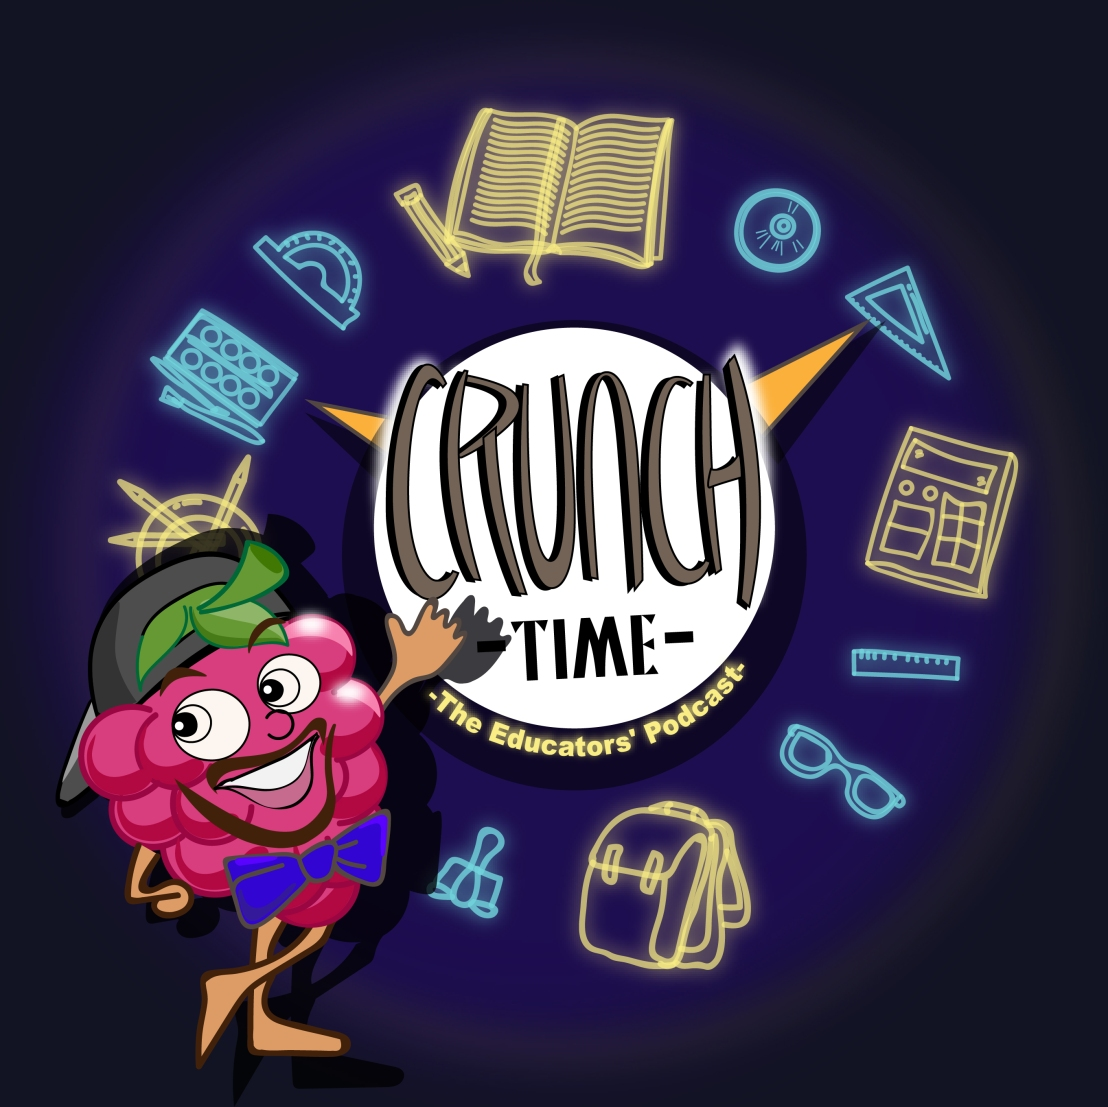 Crunch Time  w/ Mr. Crunchy!